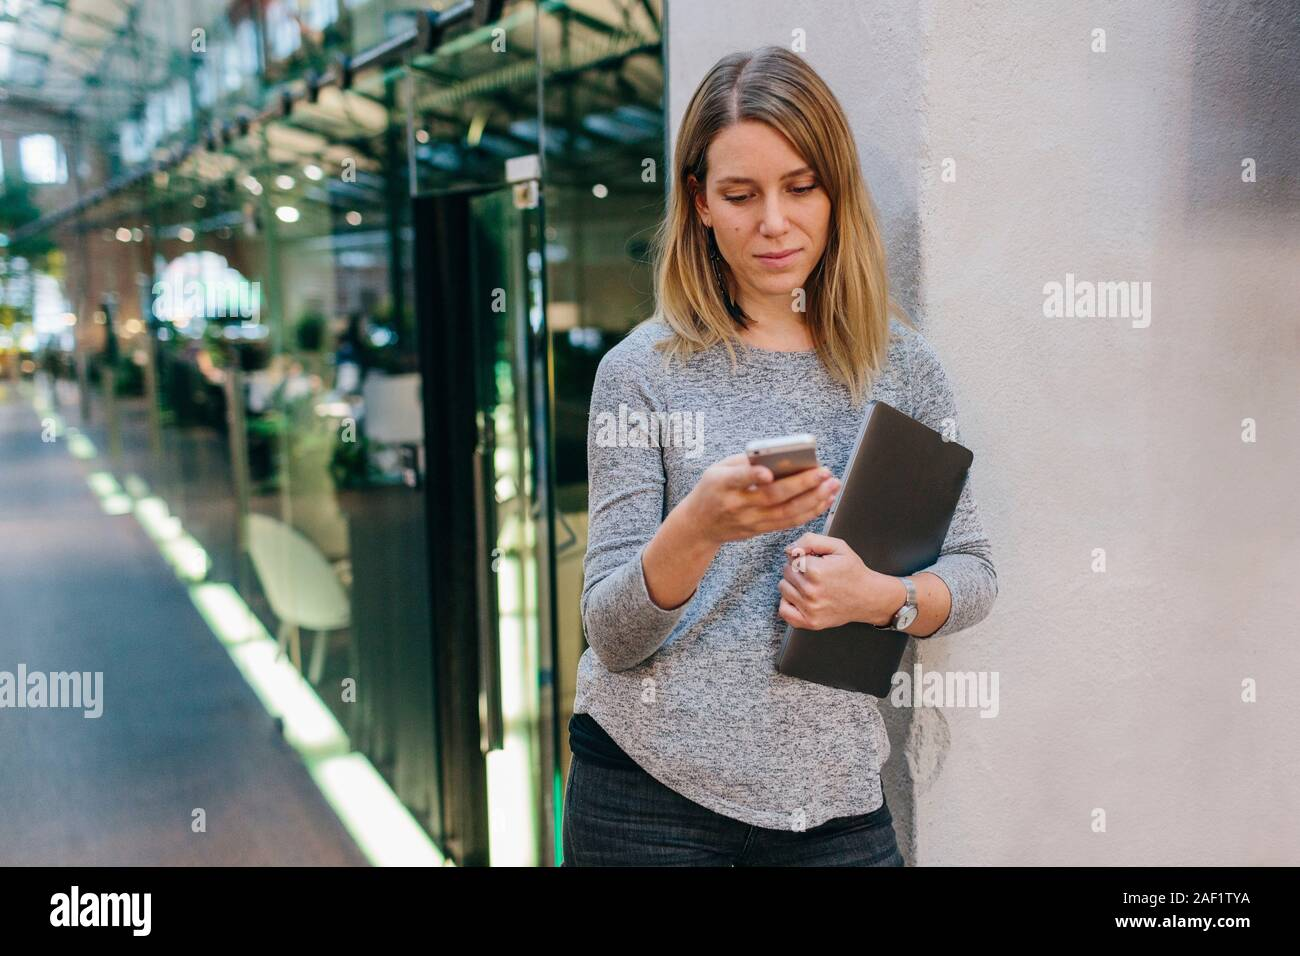 Woman in office corridor using cell phone Stock Photo